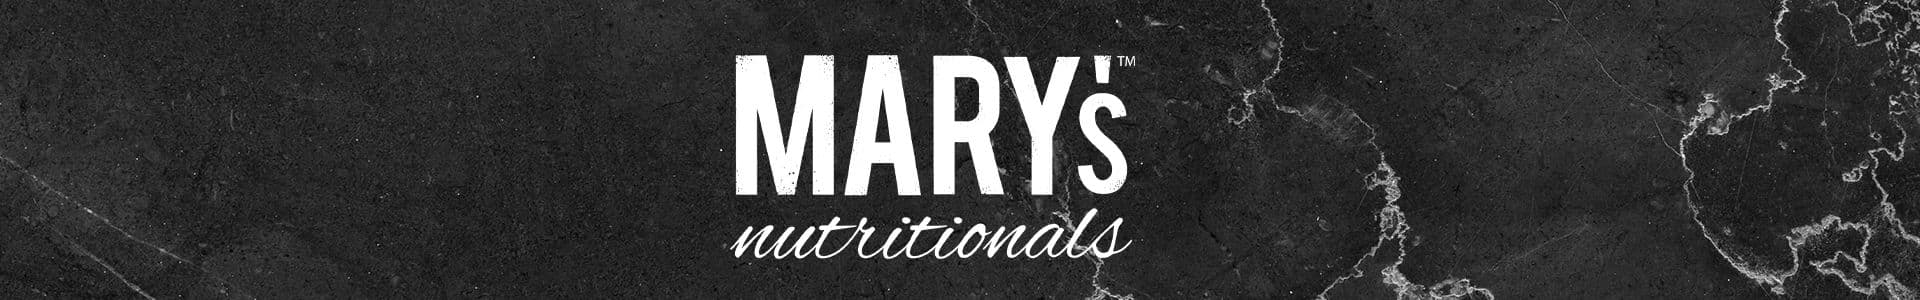 Buy Mary's Nutritionals CBD Oil & CBD Products Online